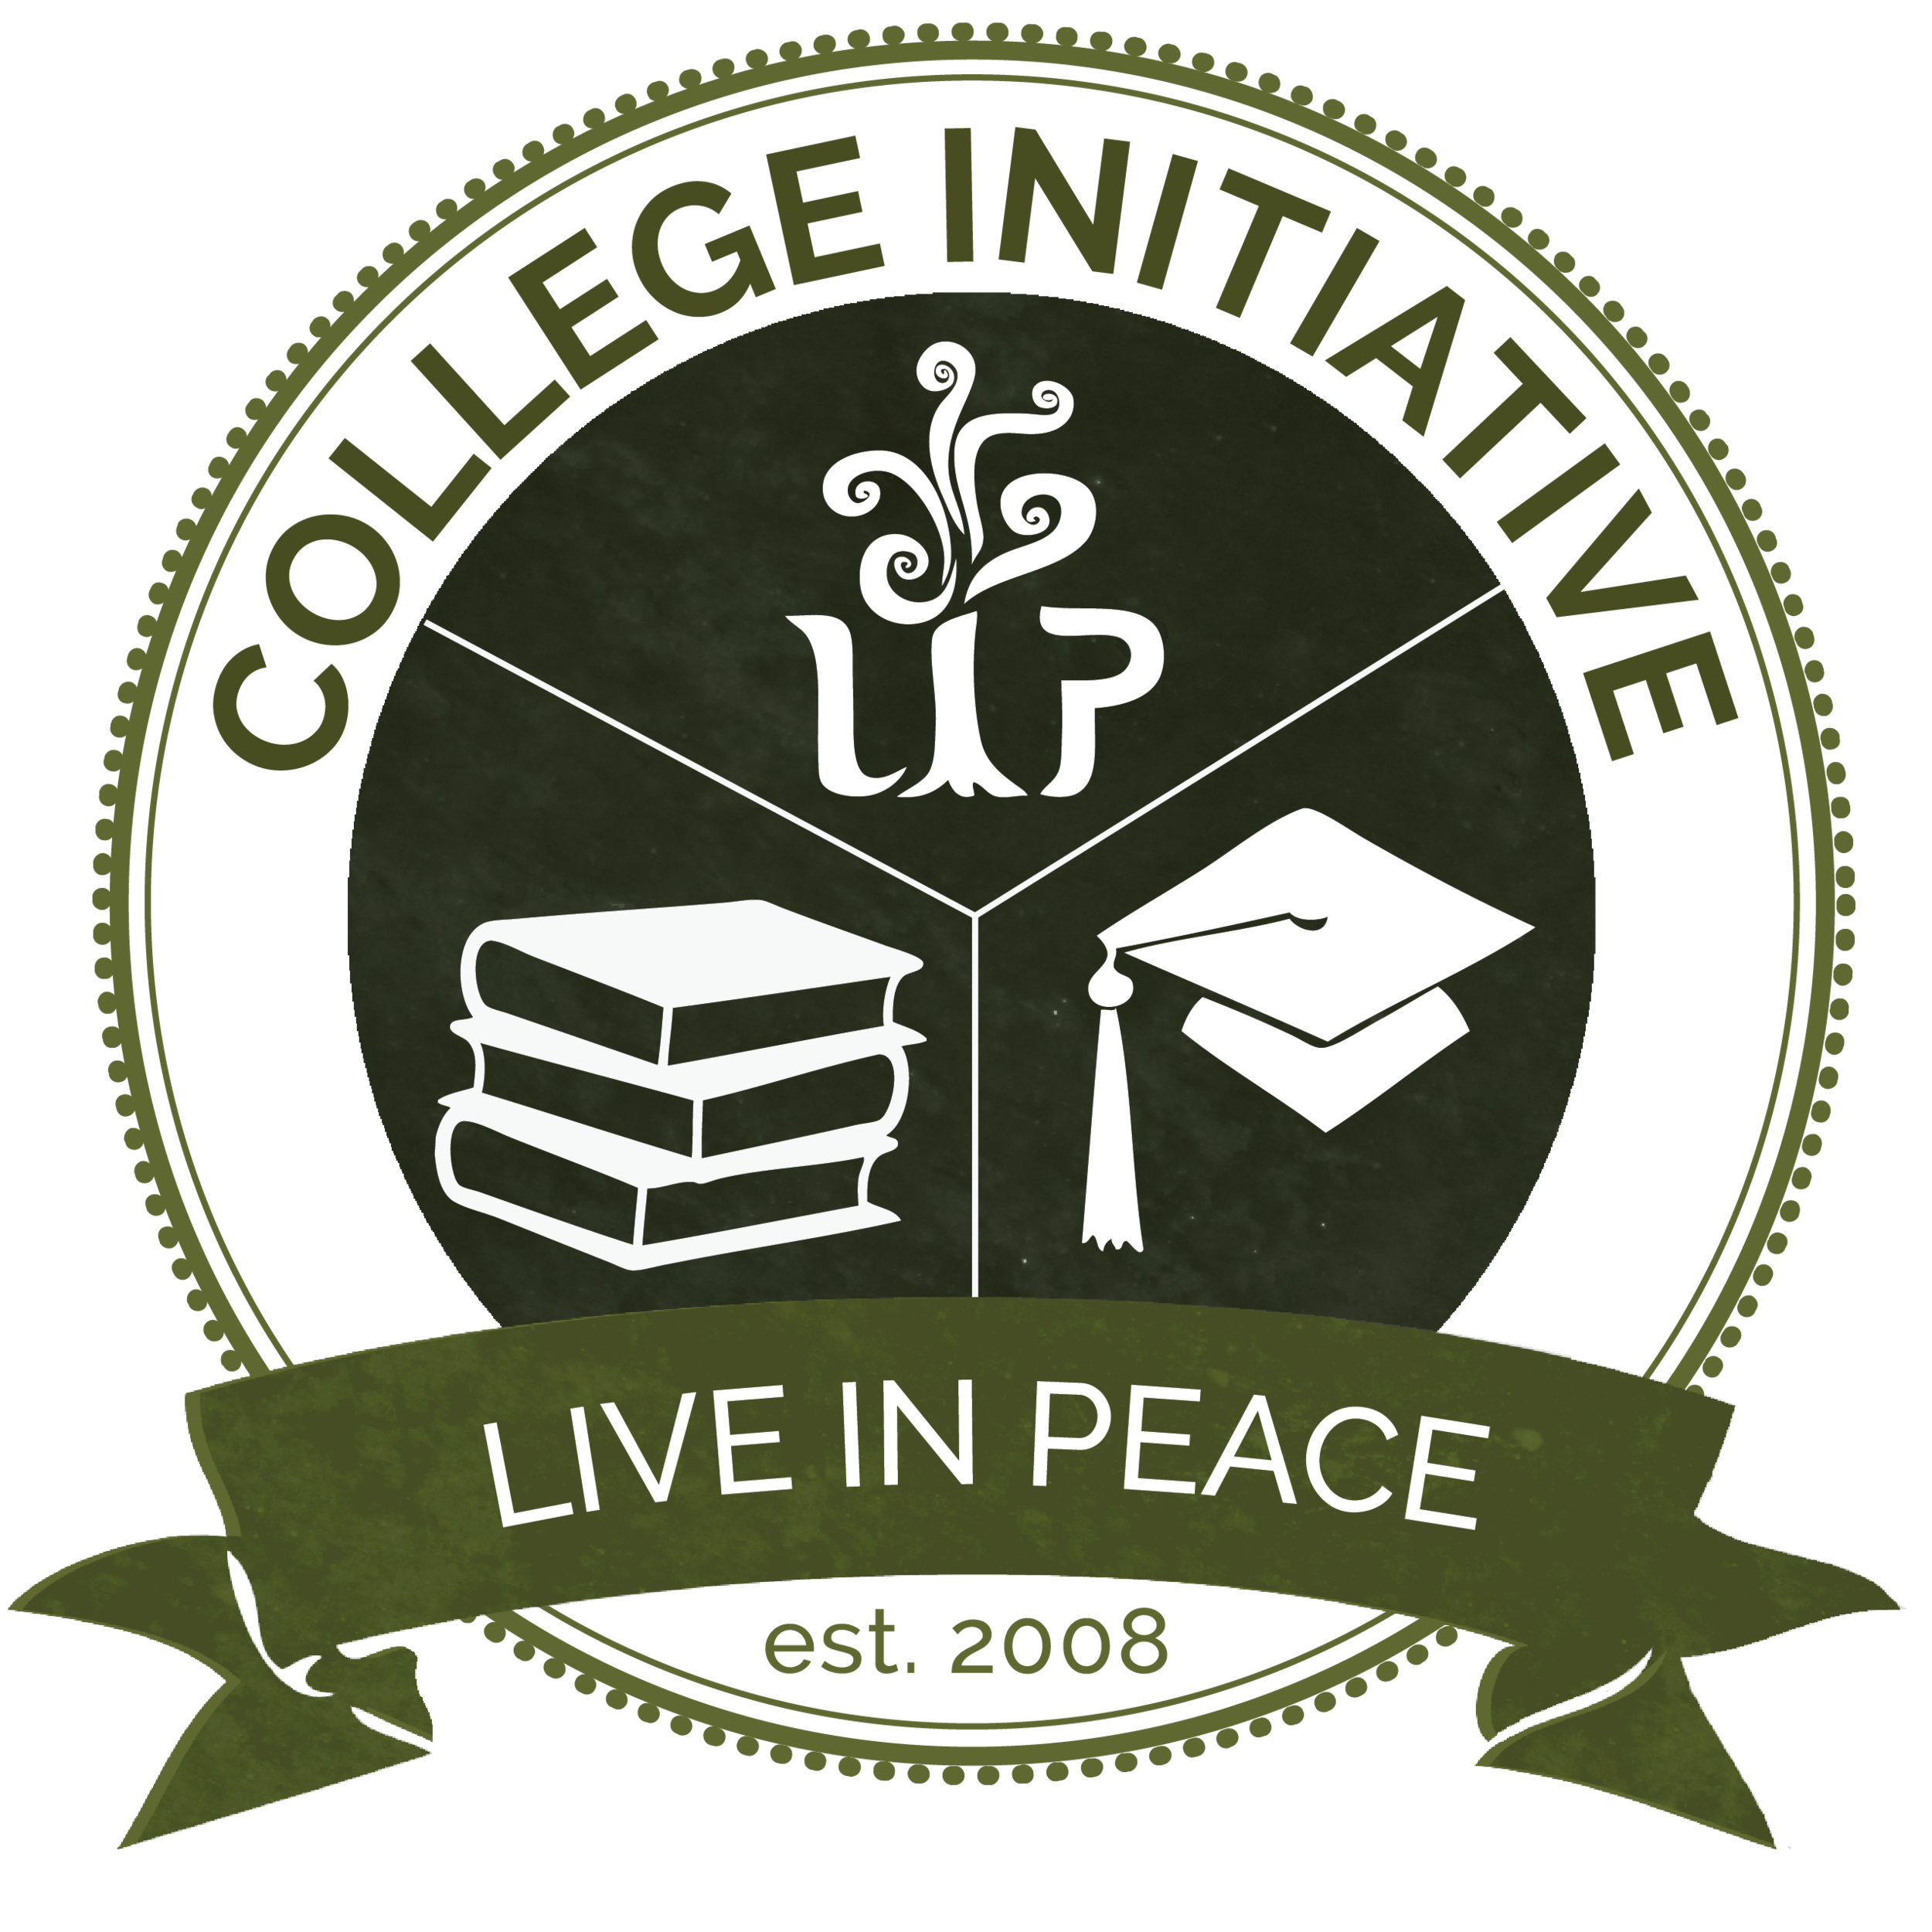 College Initiative  Our college scholarship and support program, the College Initiative has resulted in a graduation rate 6x higher than the national average for students in our demographic.